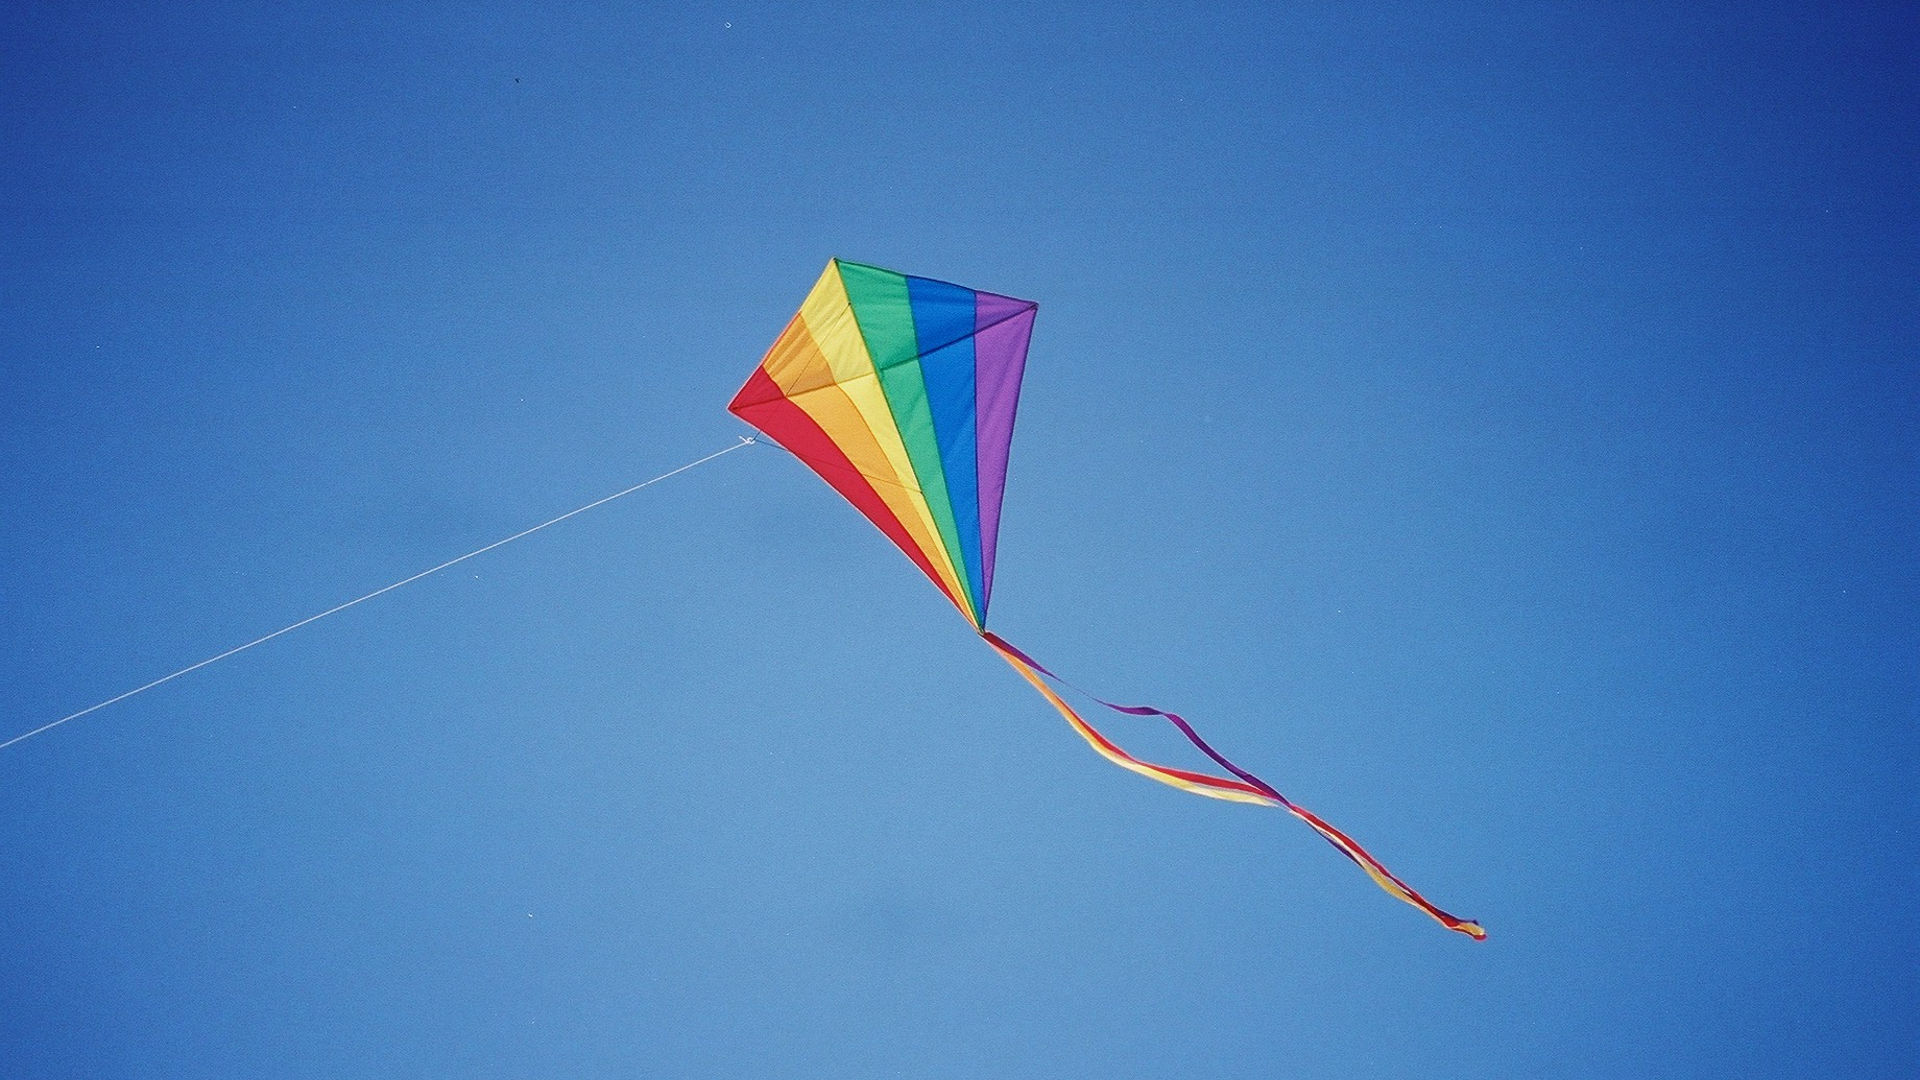 Kite flying. Photo credit: Sandra Morais on FreeImages.